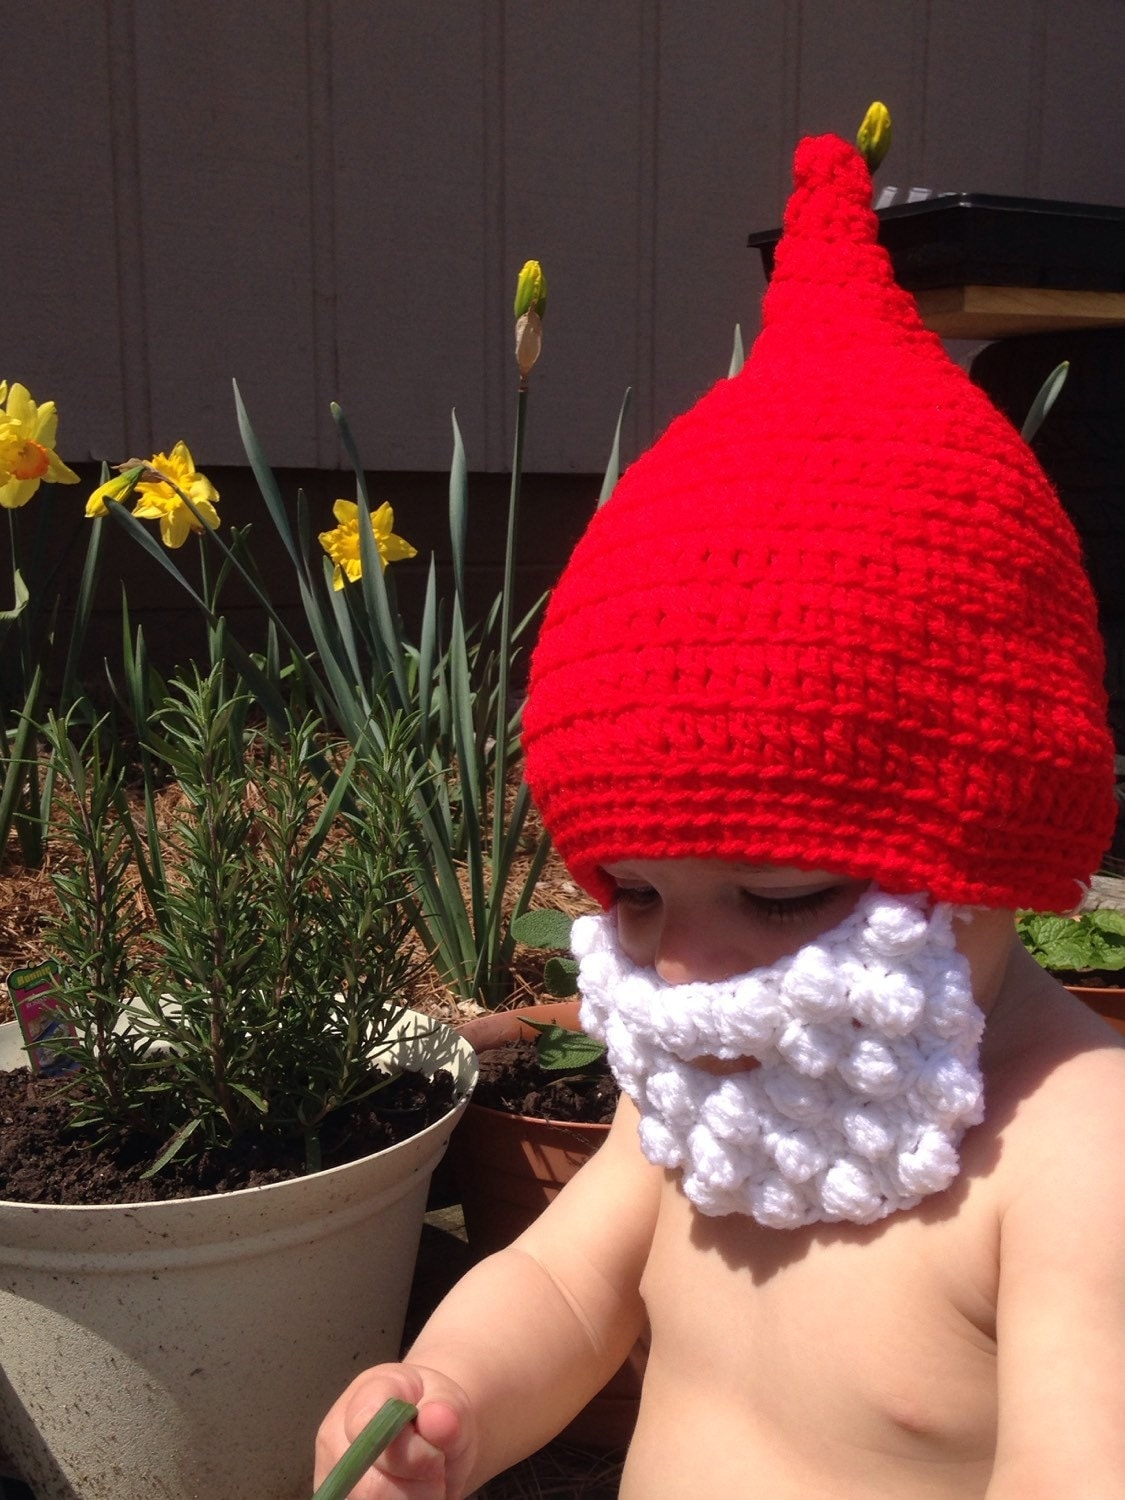 Baby Gnome: Garden Gnome Baby Hat Baby Gnome Baby Beard Hat Funny Baby